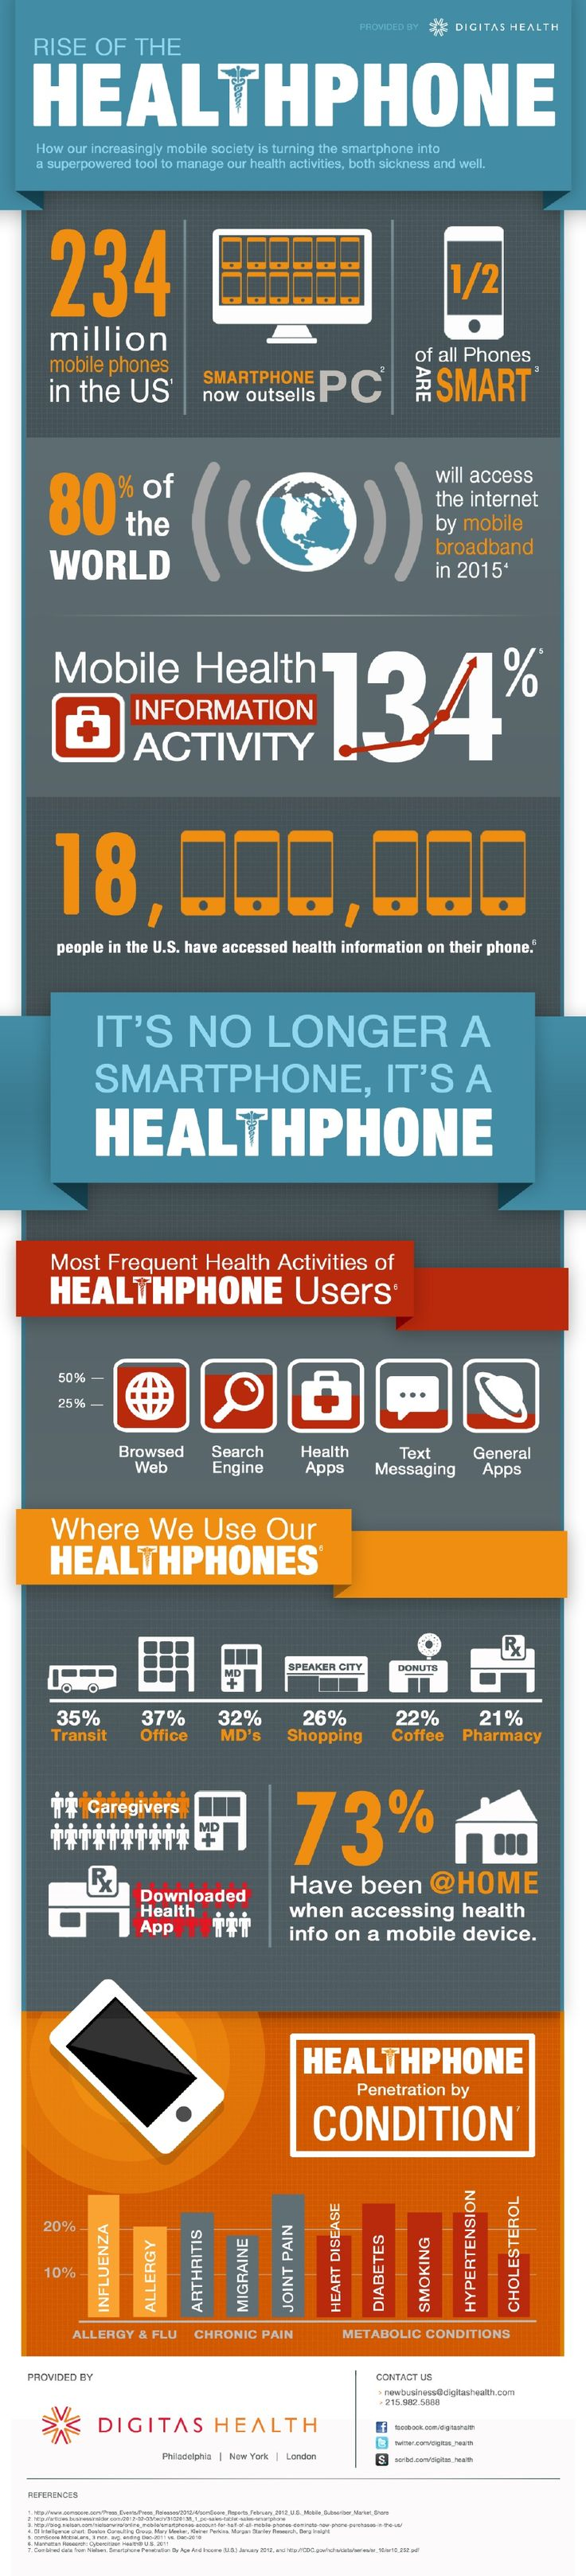 This infographic shows how ubiquitous smartphones have become in the management of personal healthcare.